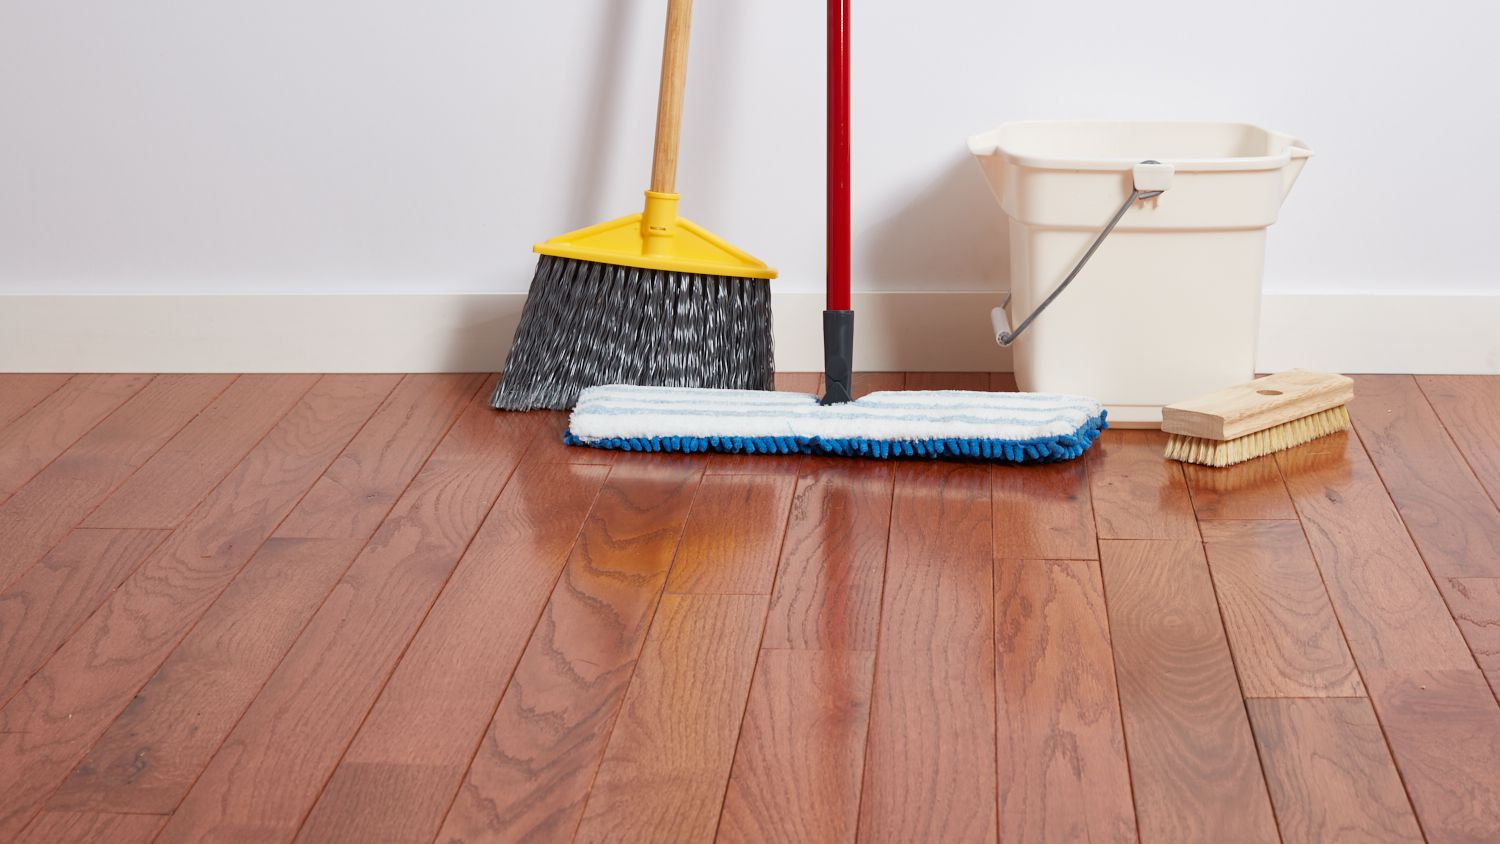 Products To Avoid On Hardwood Floors